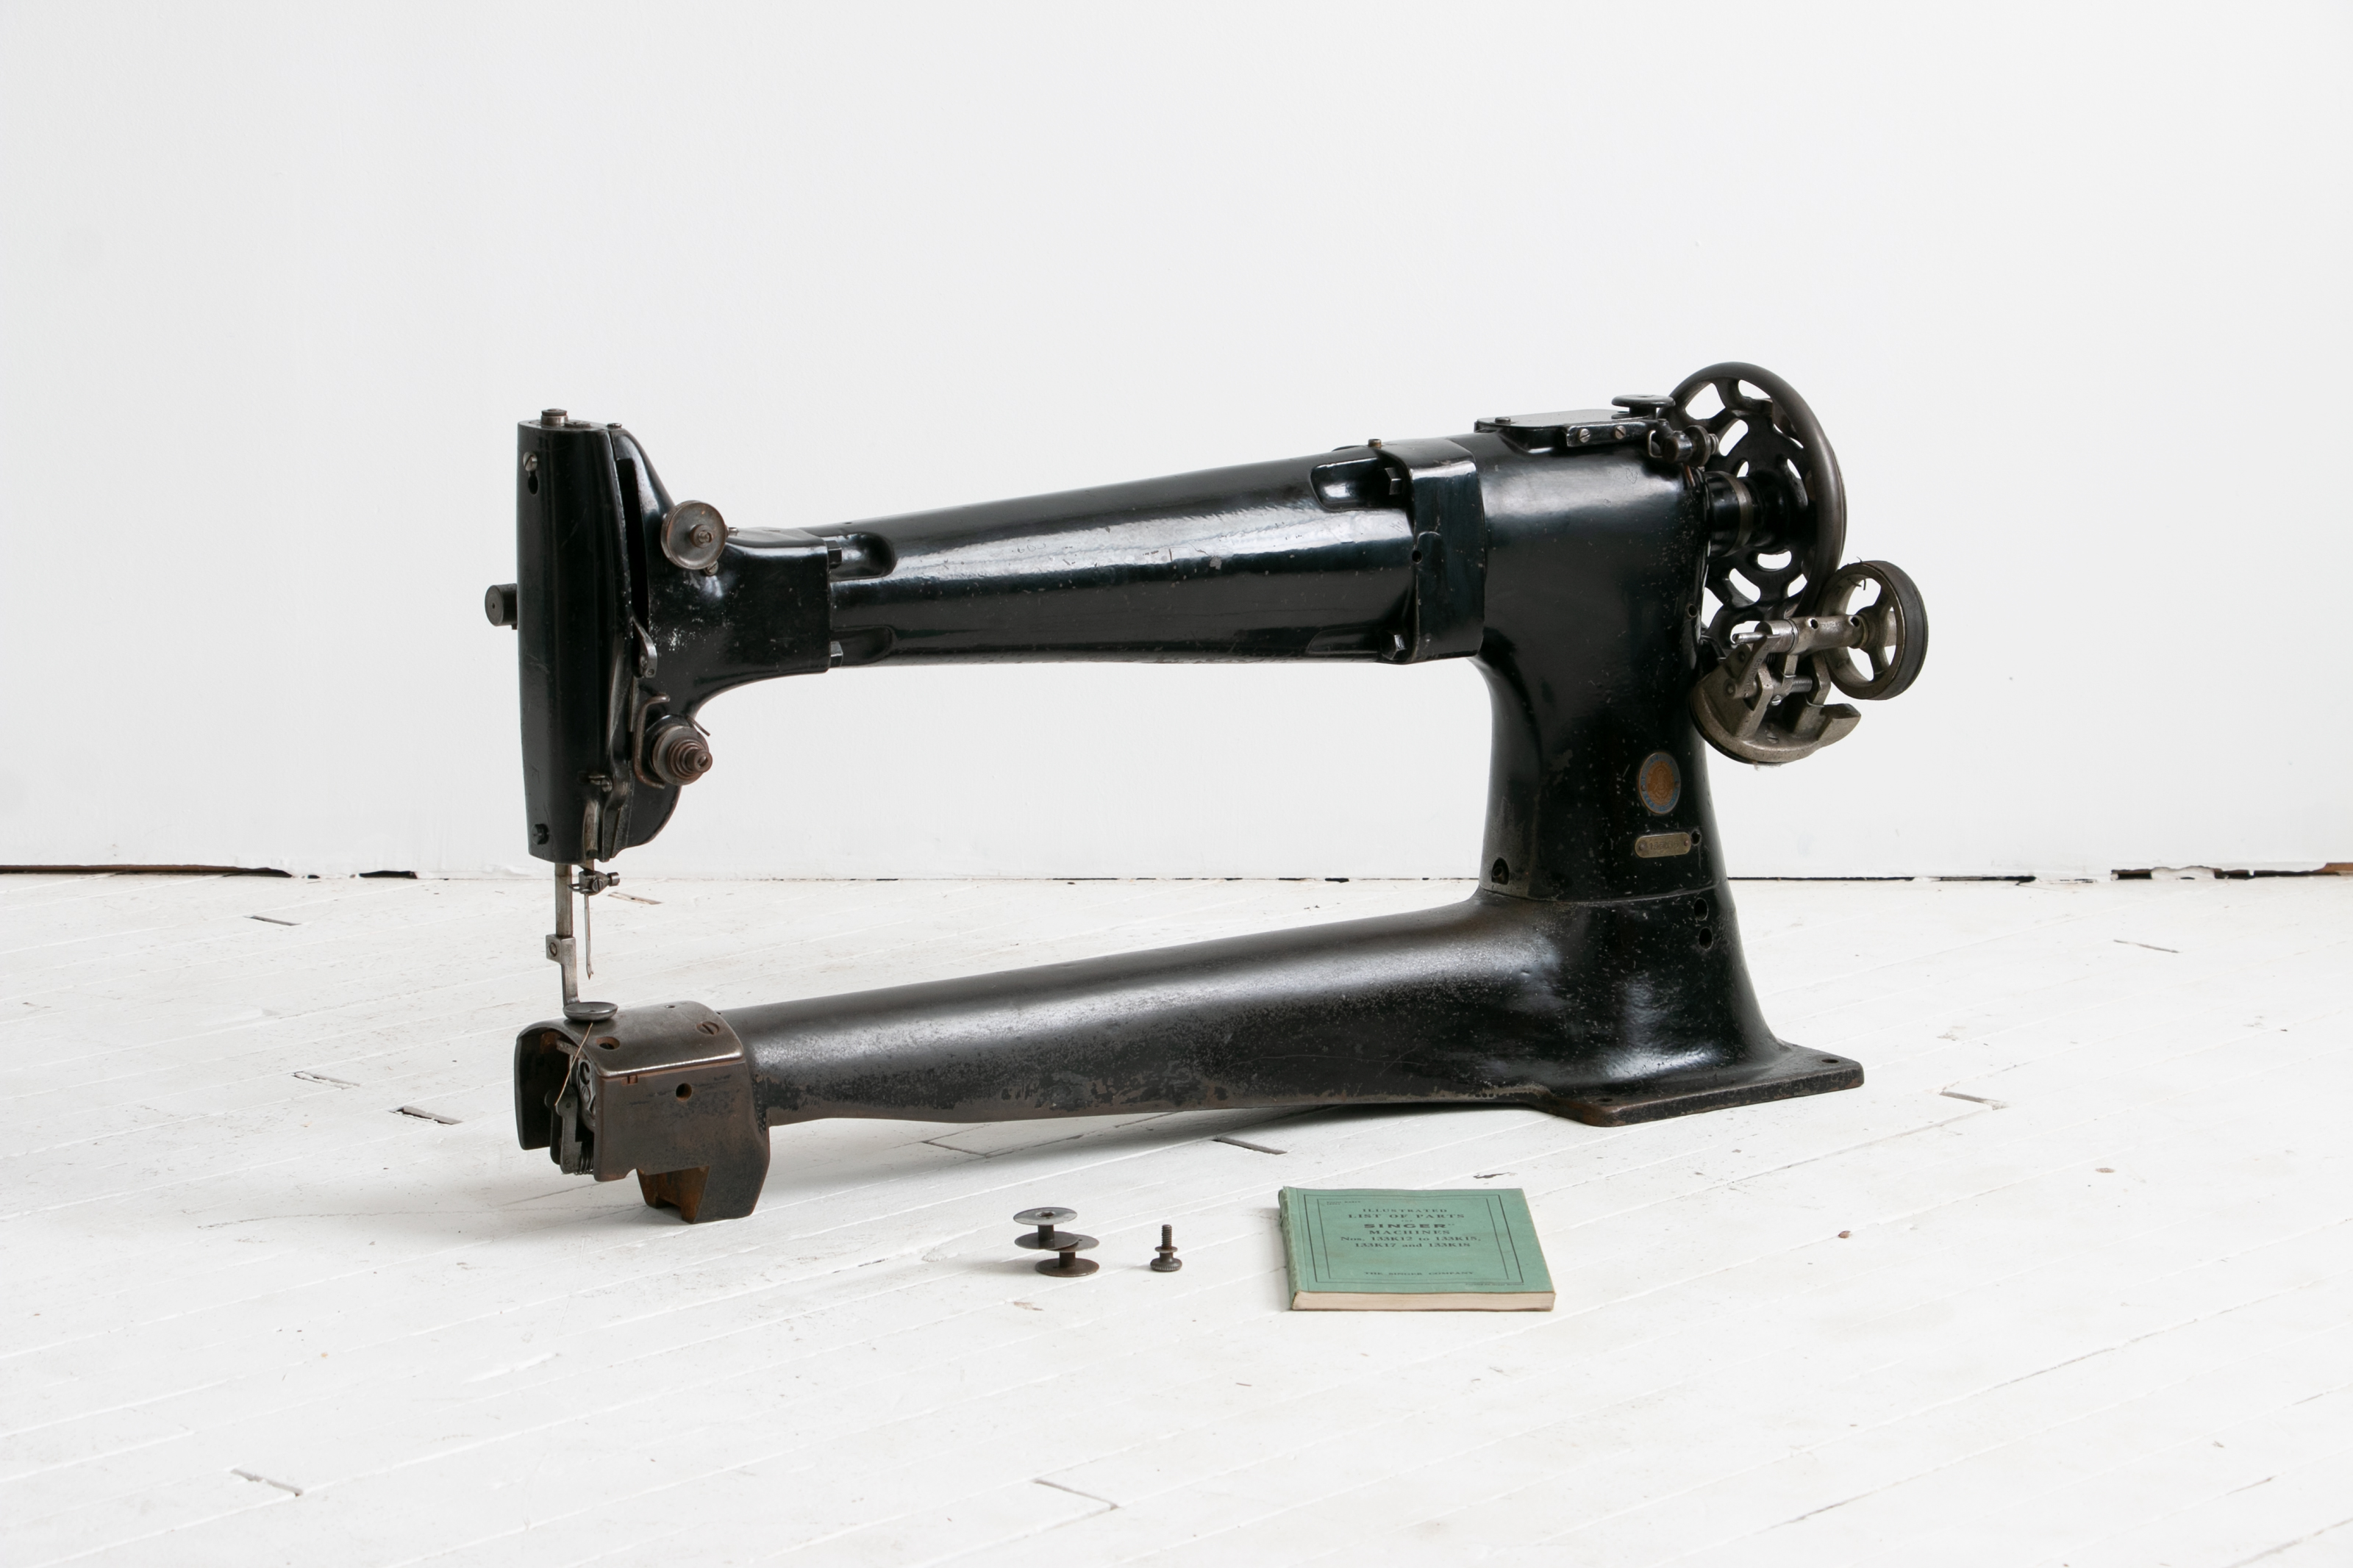 Singer 133k15 Long Arm Cylinder Bed Industrial Sewing Machine